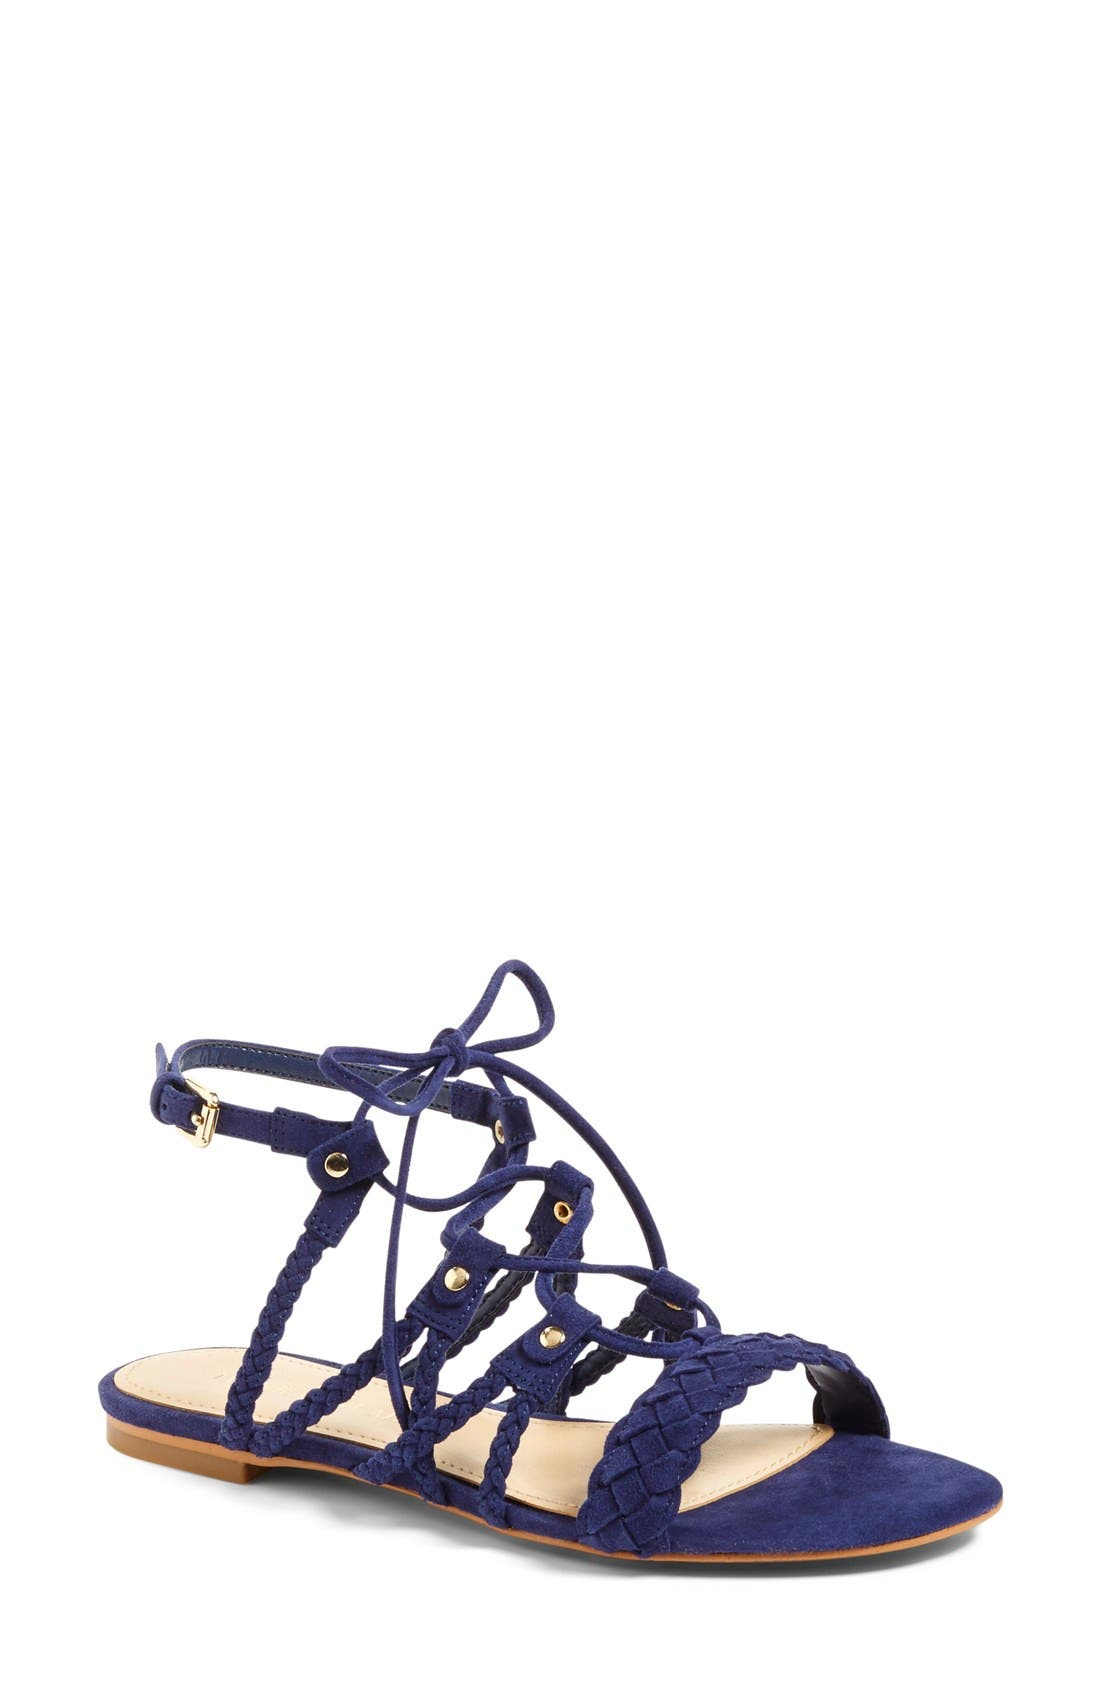 Main Image - Ivanka Trump 'Catti' Sandal (Women)